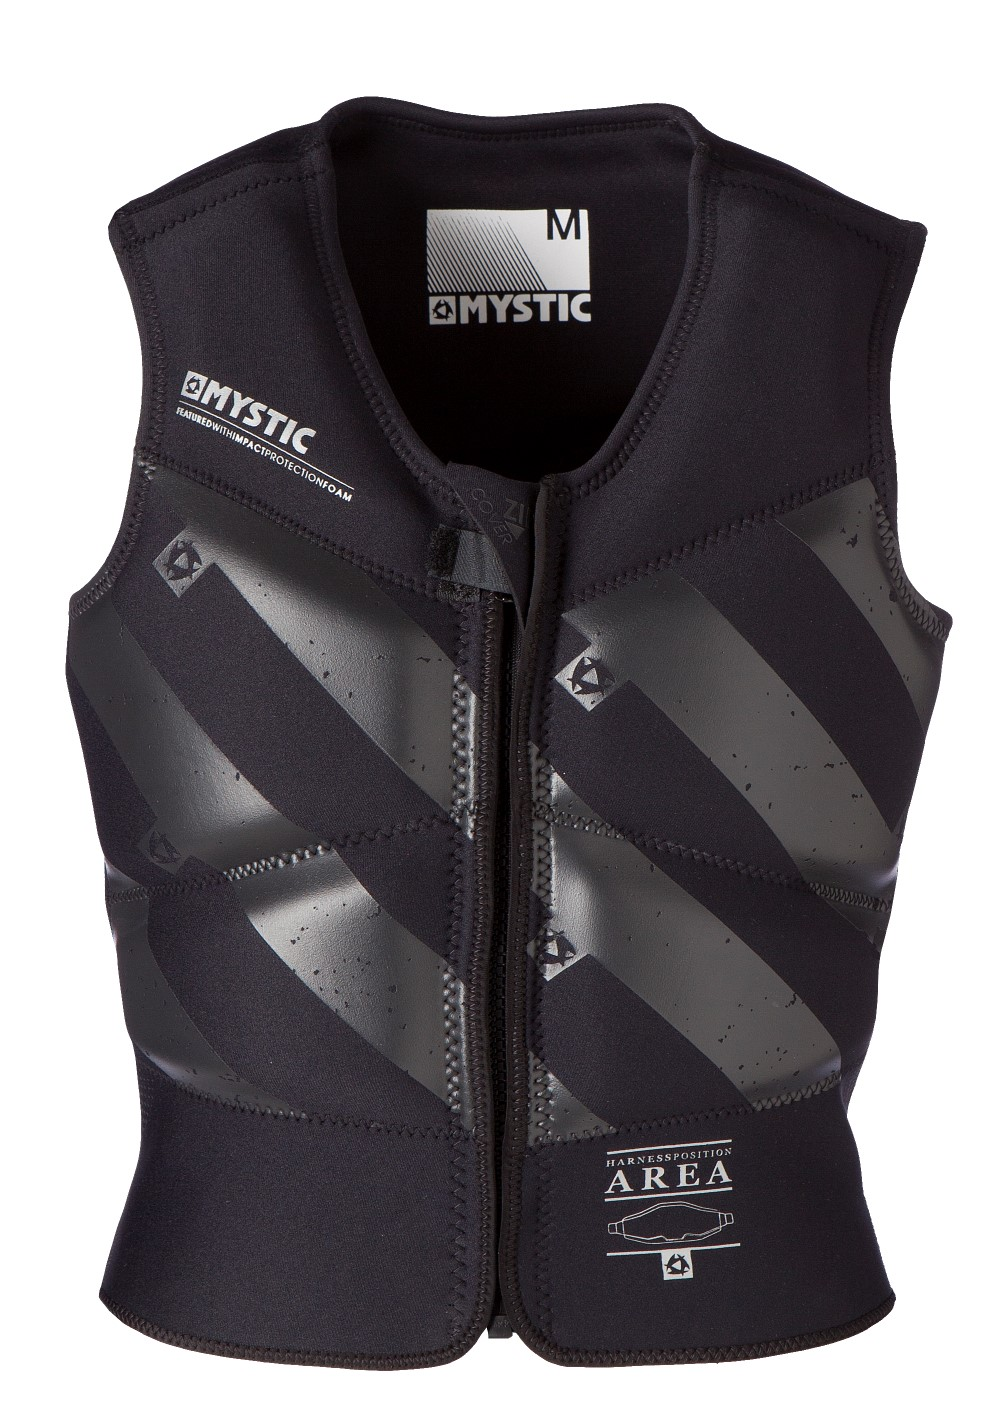 BLOCK VEST - BLACK - MEDIUM MYSTIC 2016